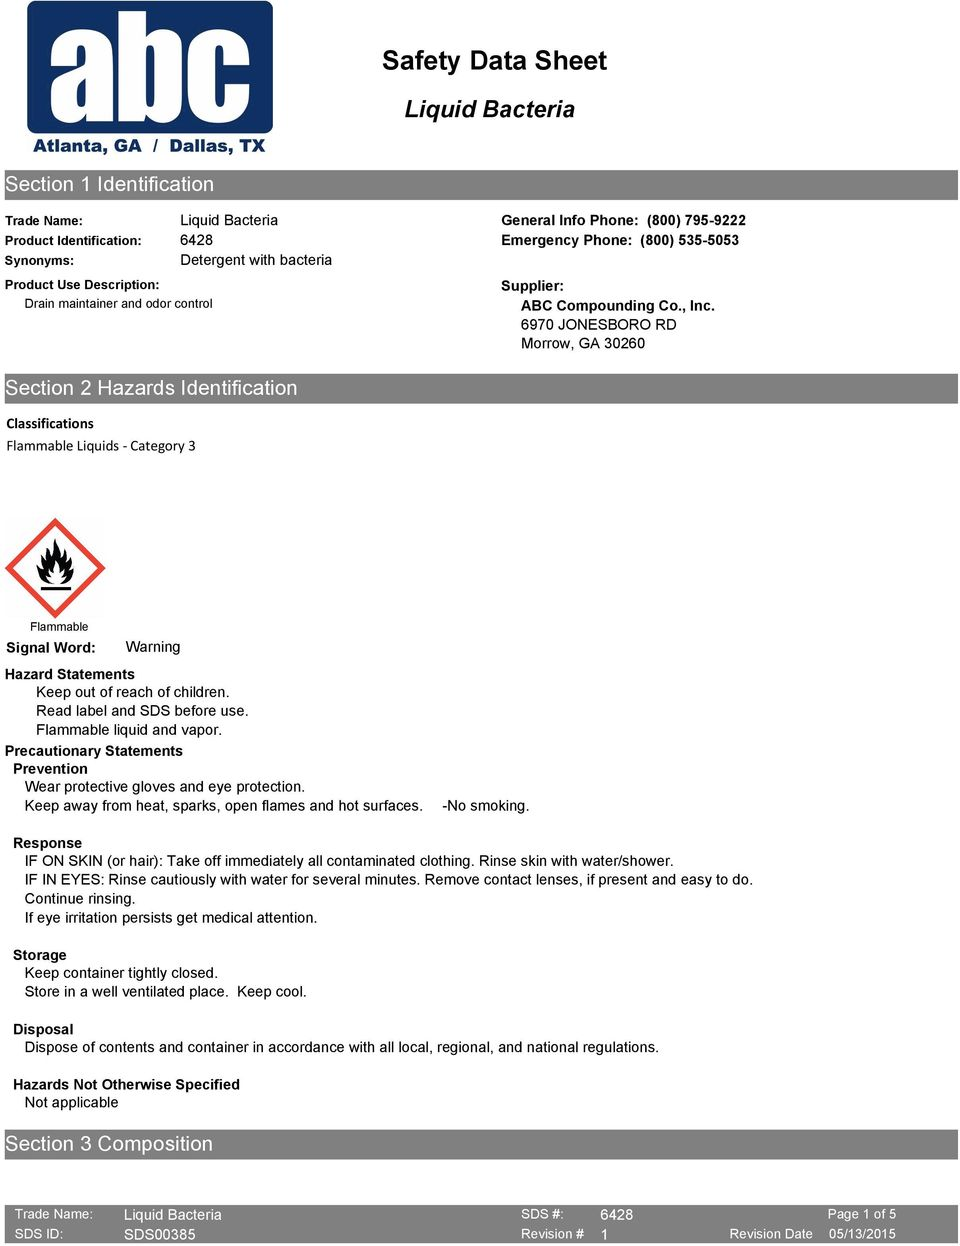 6970 JONESBORO RD Morrow, GA 30260 Flammable Signal Word: Warning Hazard Statements Keep out of reach of children. Read label and SDS before use. Flammable liquid and vapor.